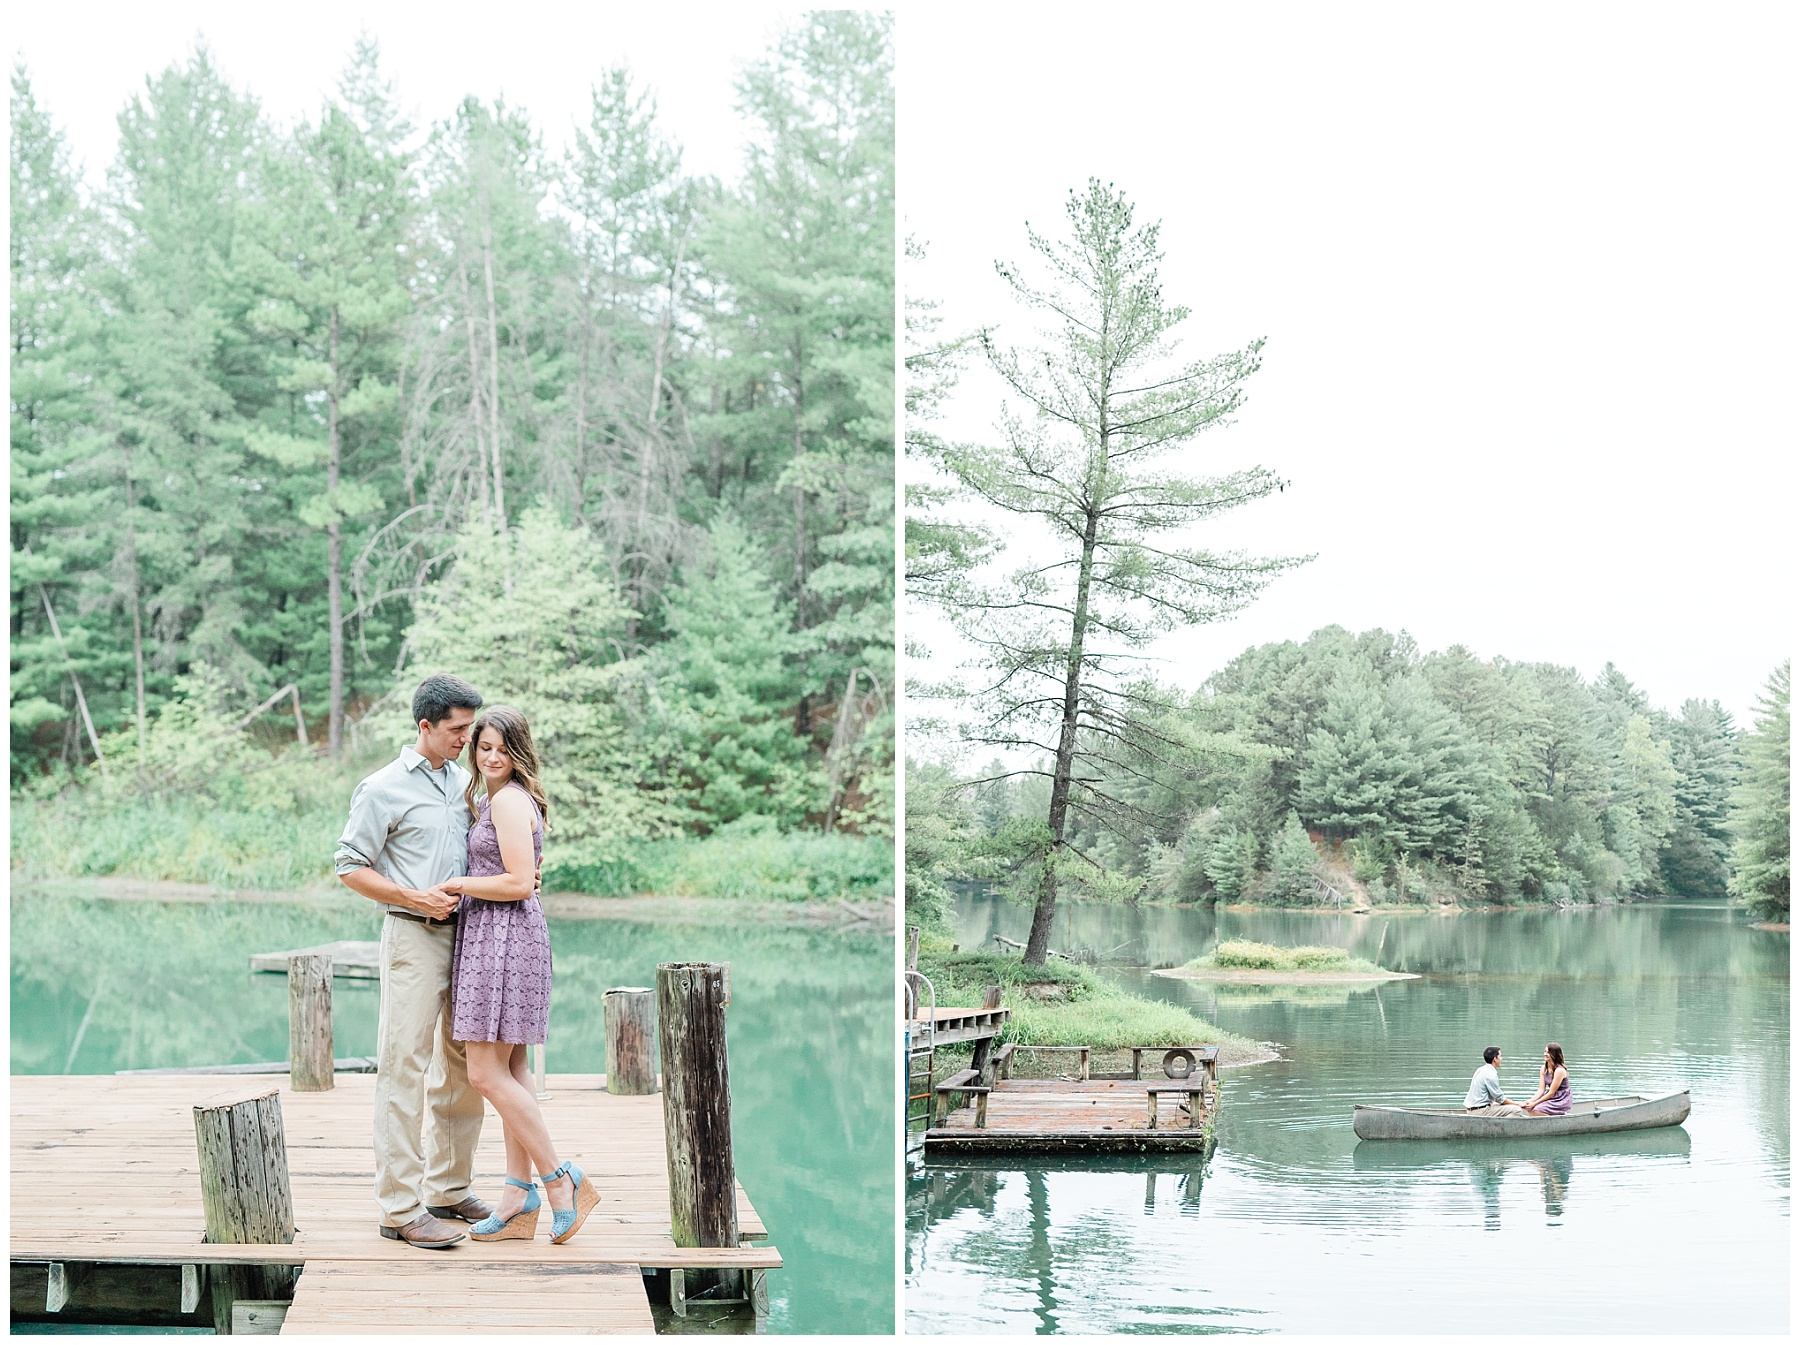 Wanderlust Engagement Session in the Pines with Sunset Canoe Ride in Blue Green Lake in Mid Missouri by Kelsi Kliethermes Photography_0003.jpg